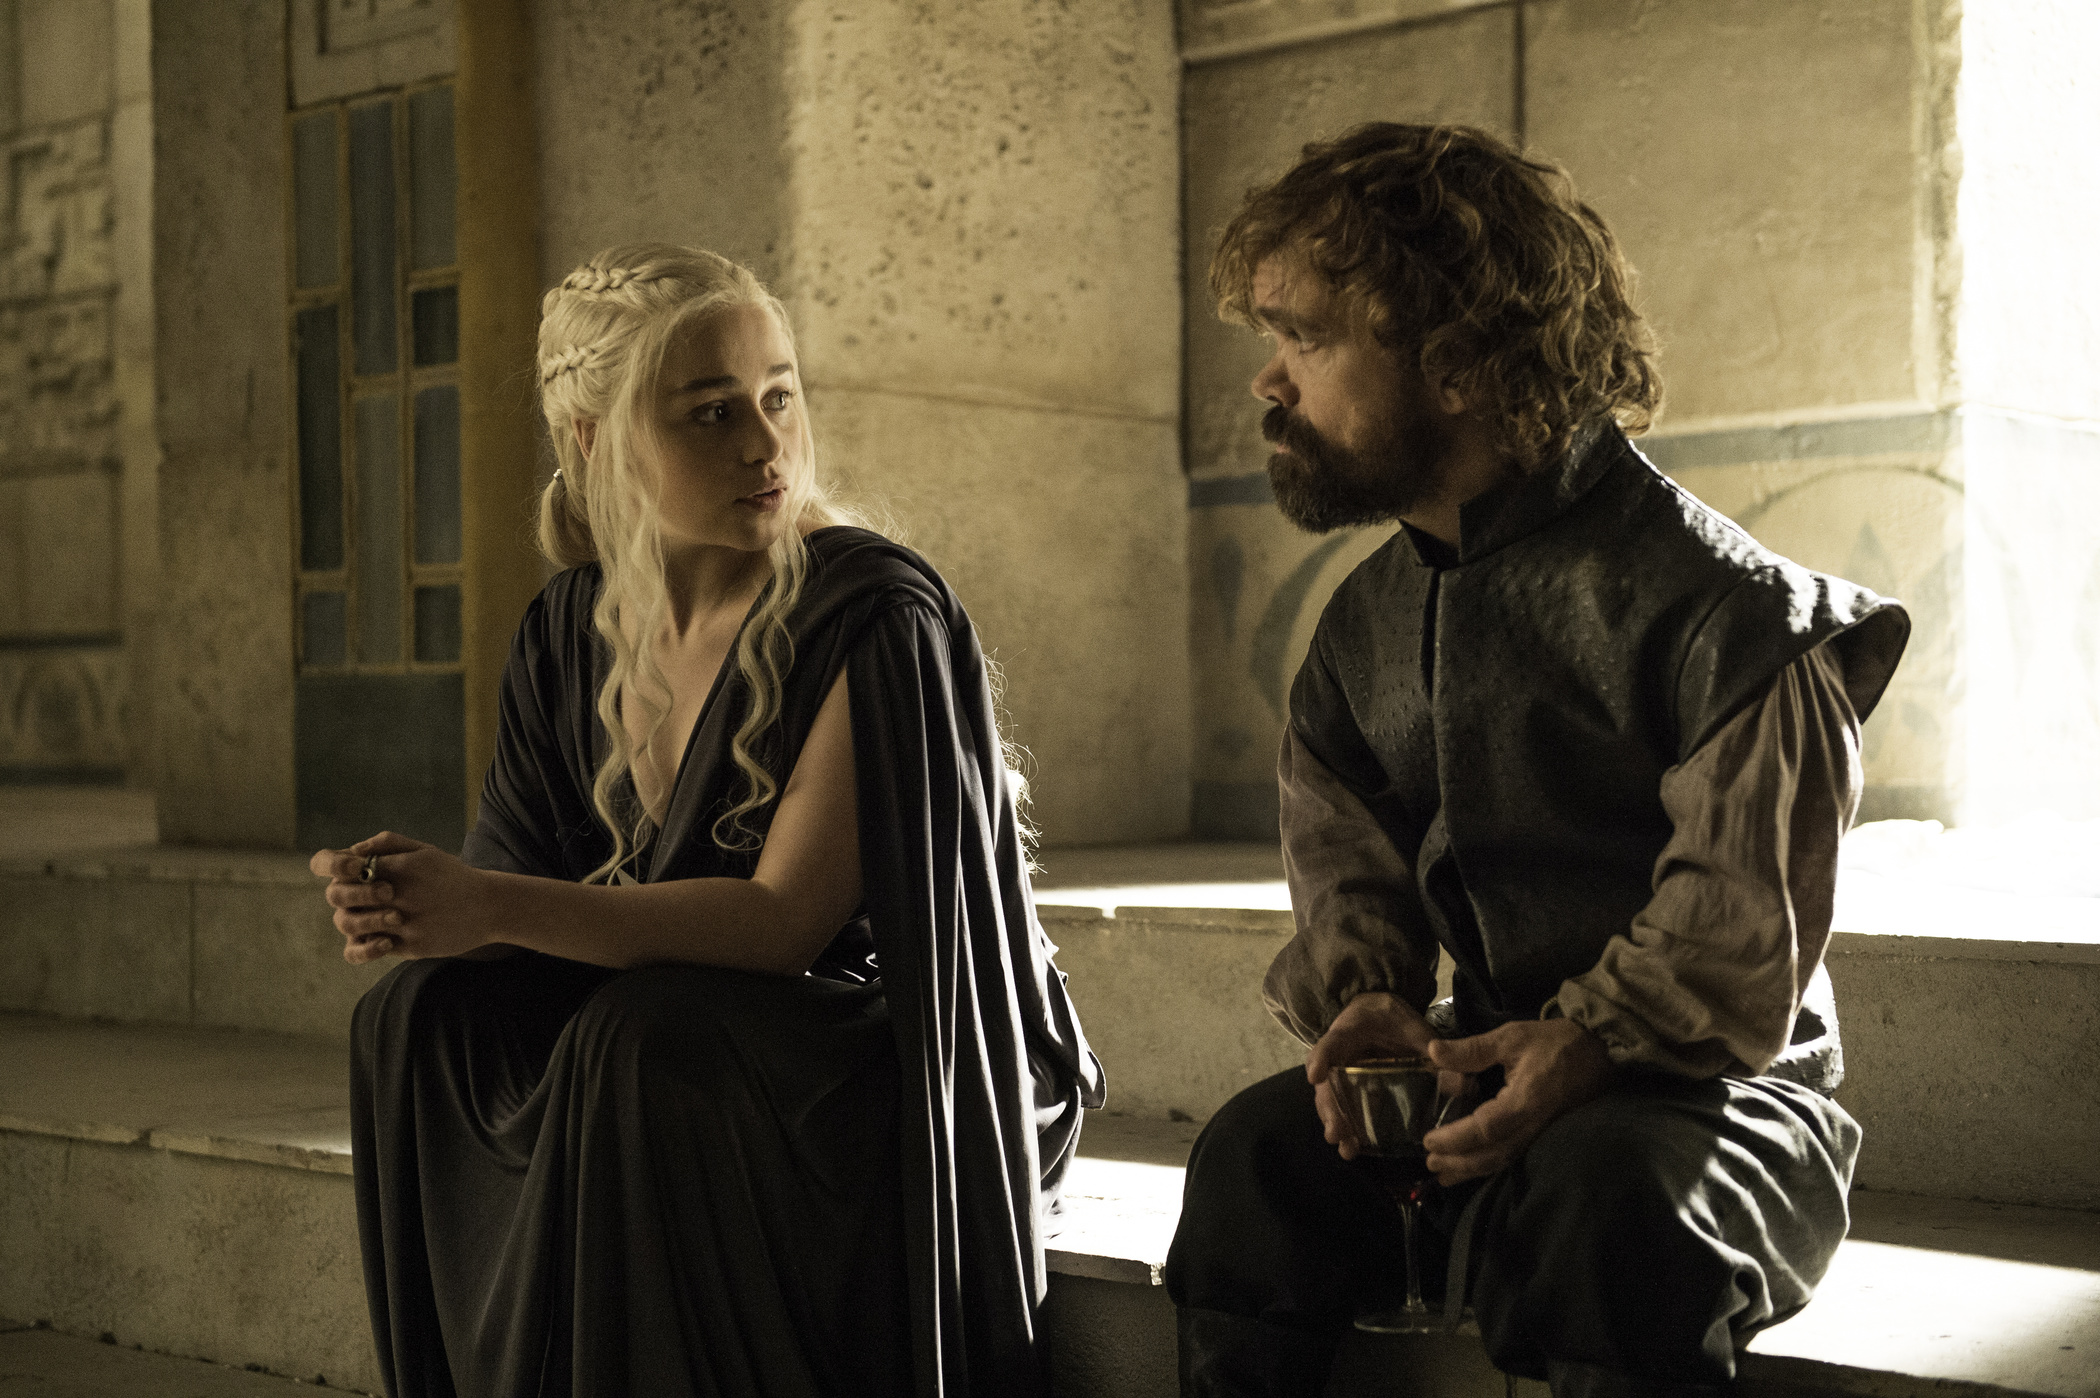 Emilia Clarke as Daenerys Targaryen and Peter Dinklage as Tyrion Lannister in Game of Thrones